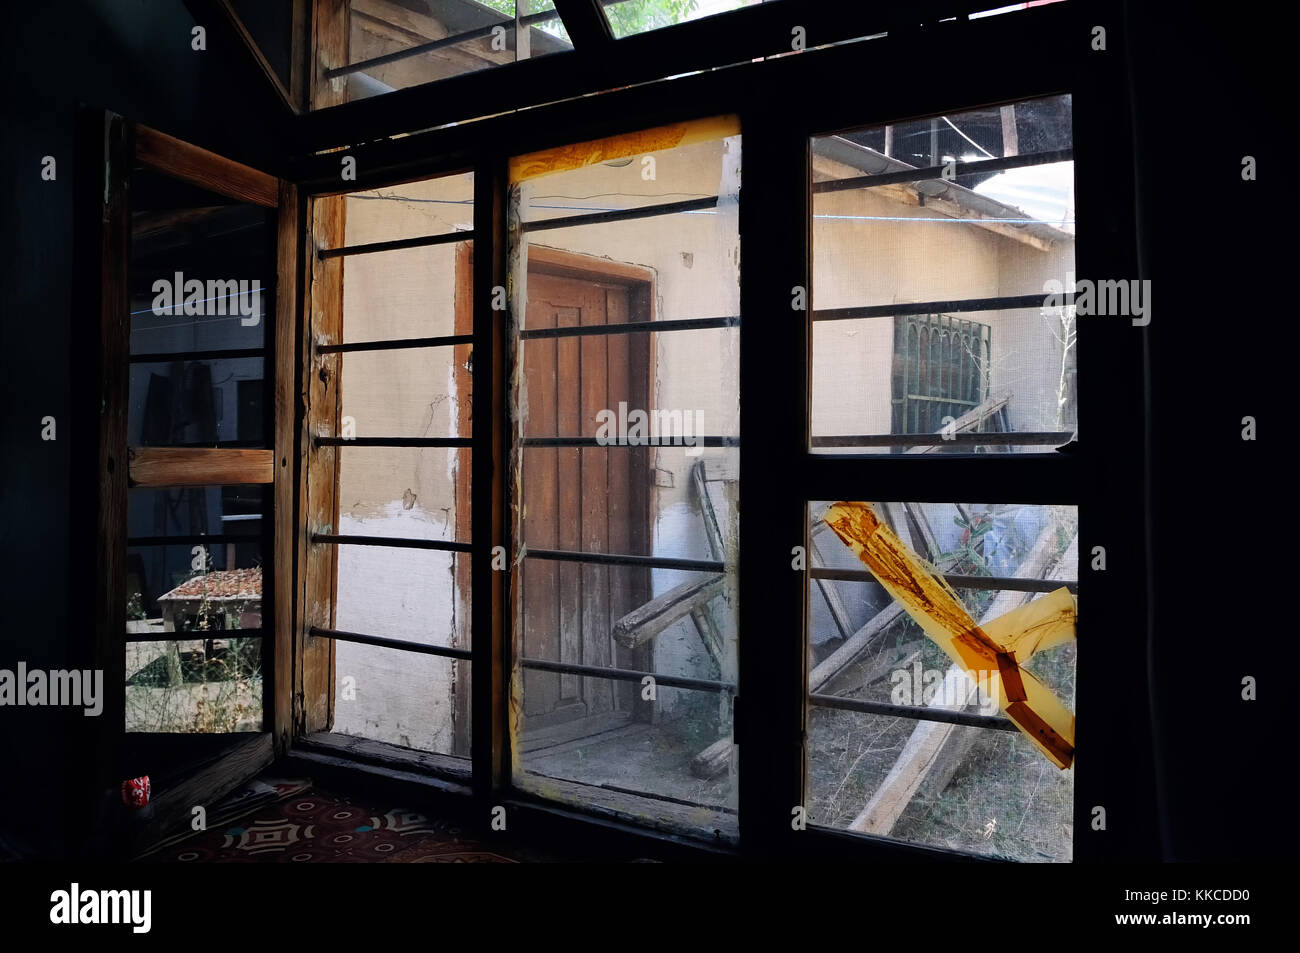 ruin home, old window - Stock Image